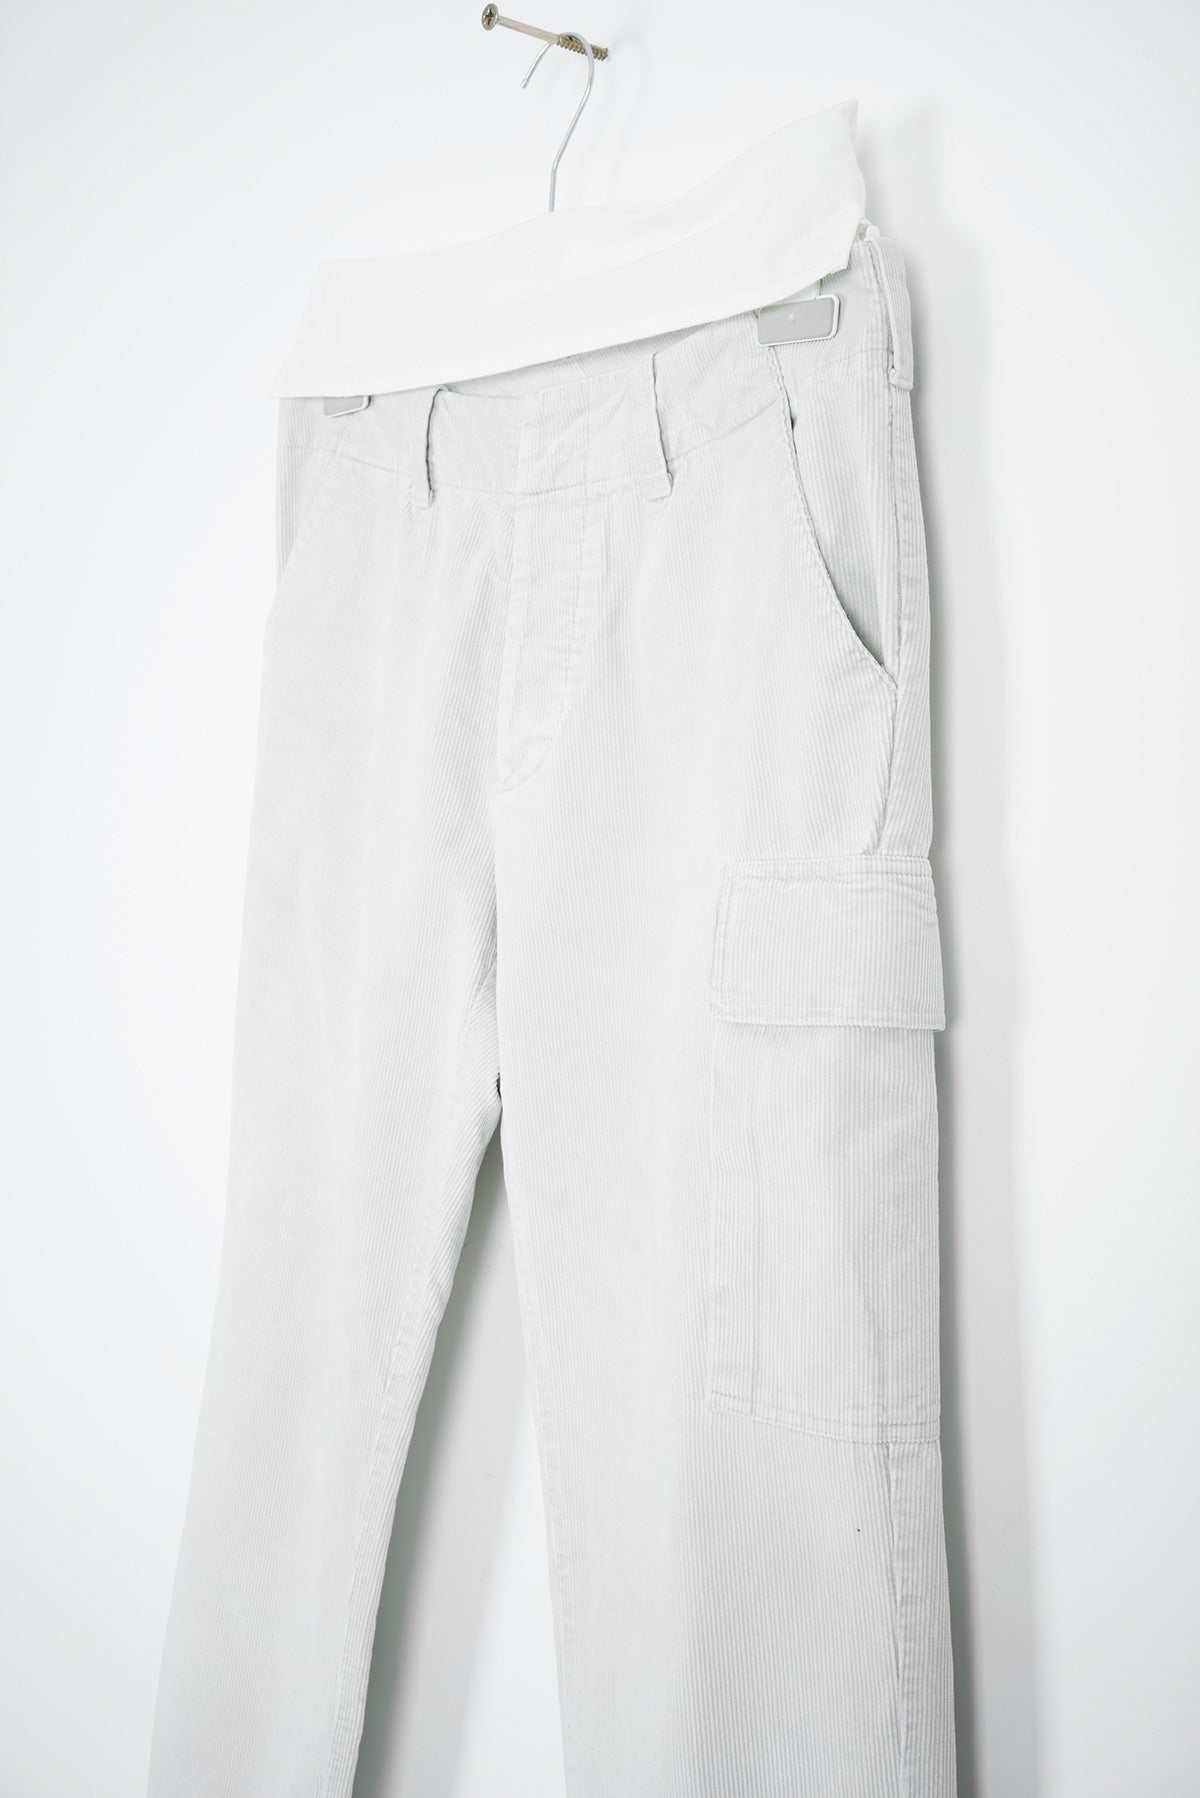 1998 A/W CORDUROY PANTS WITH CARGO POCKET